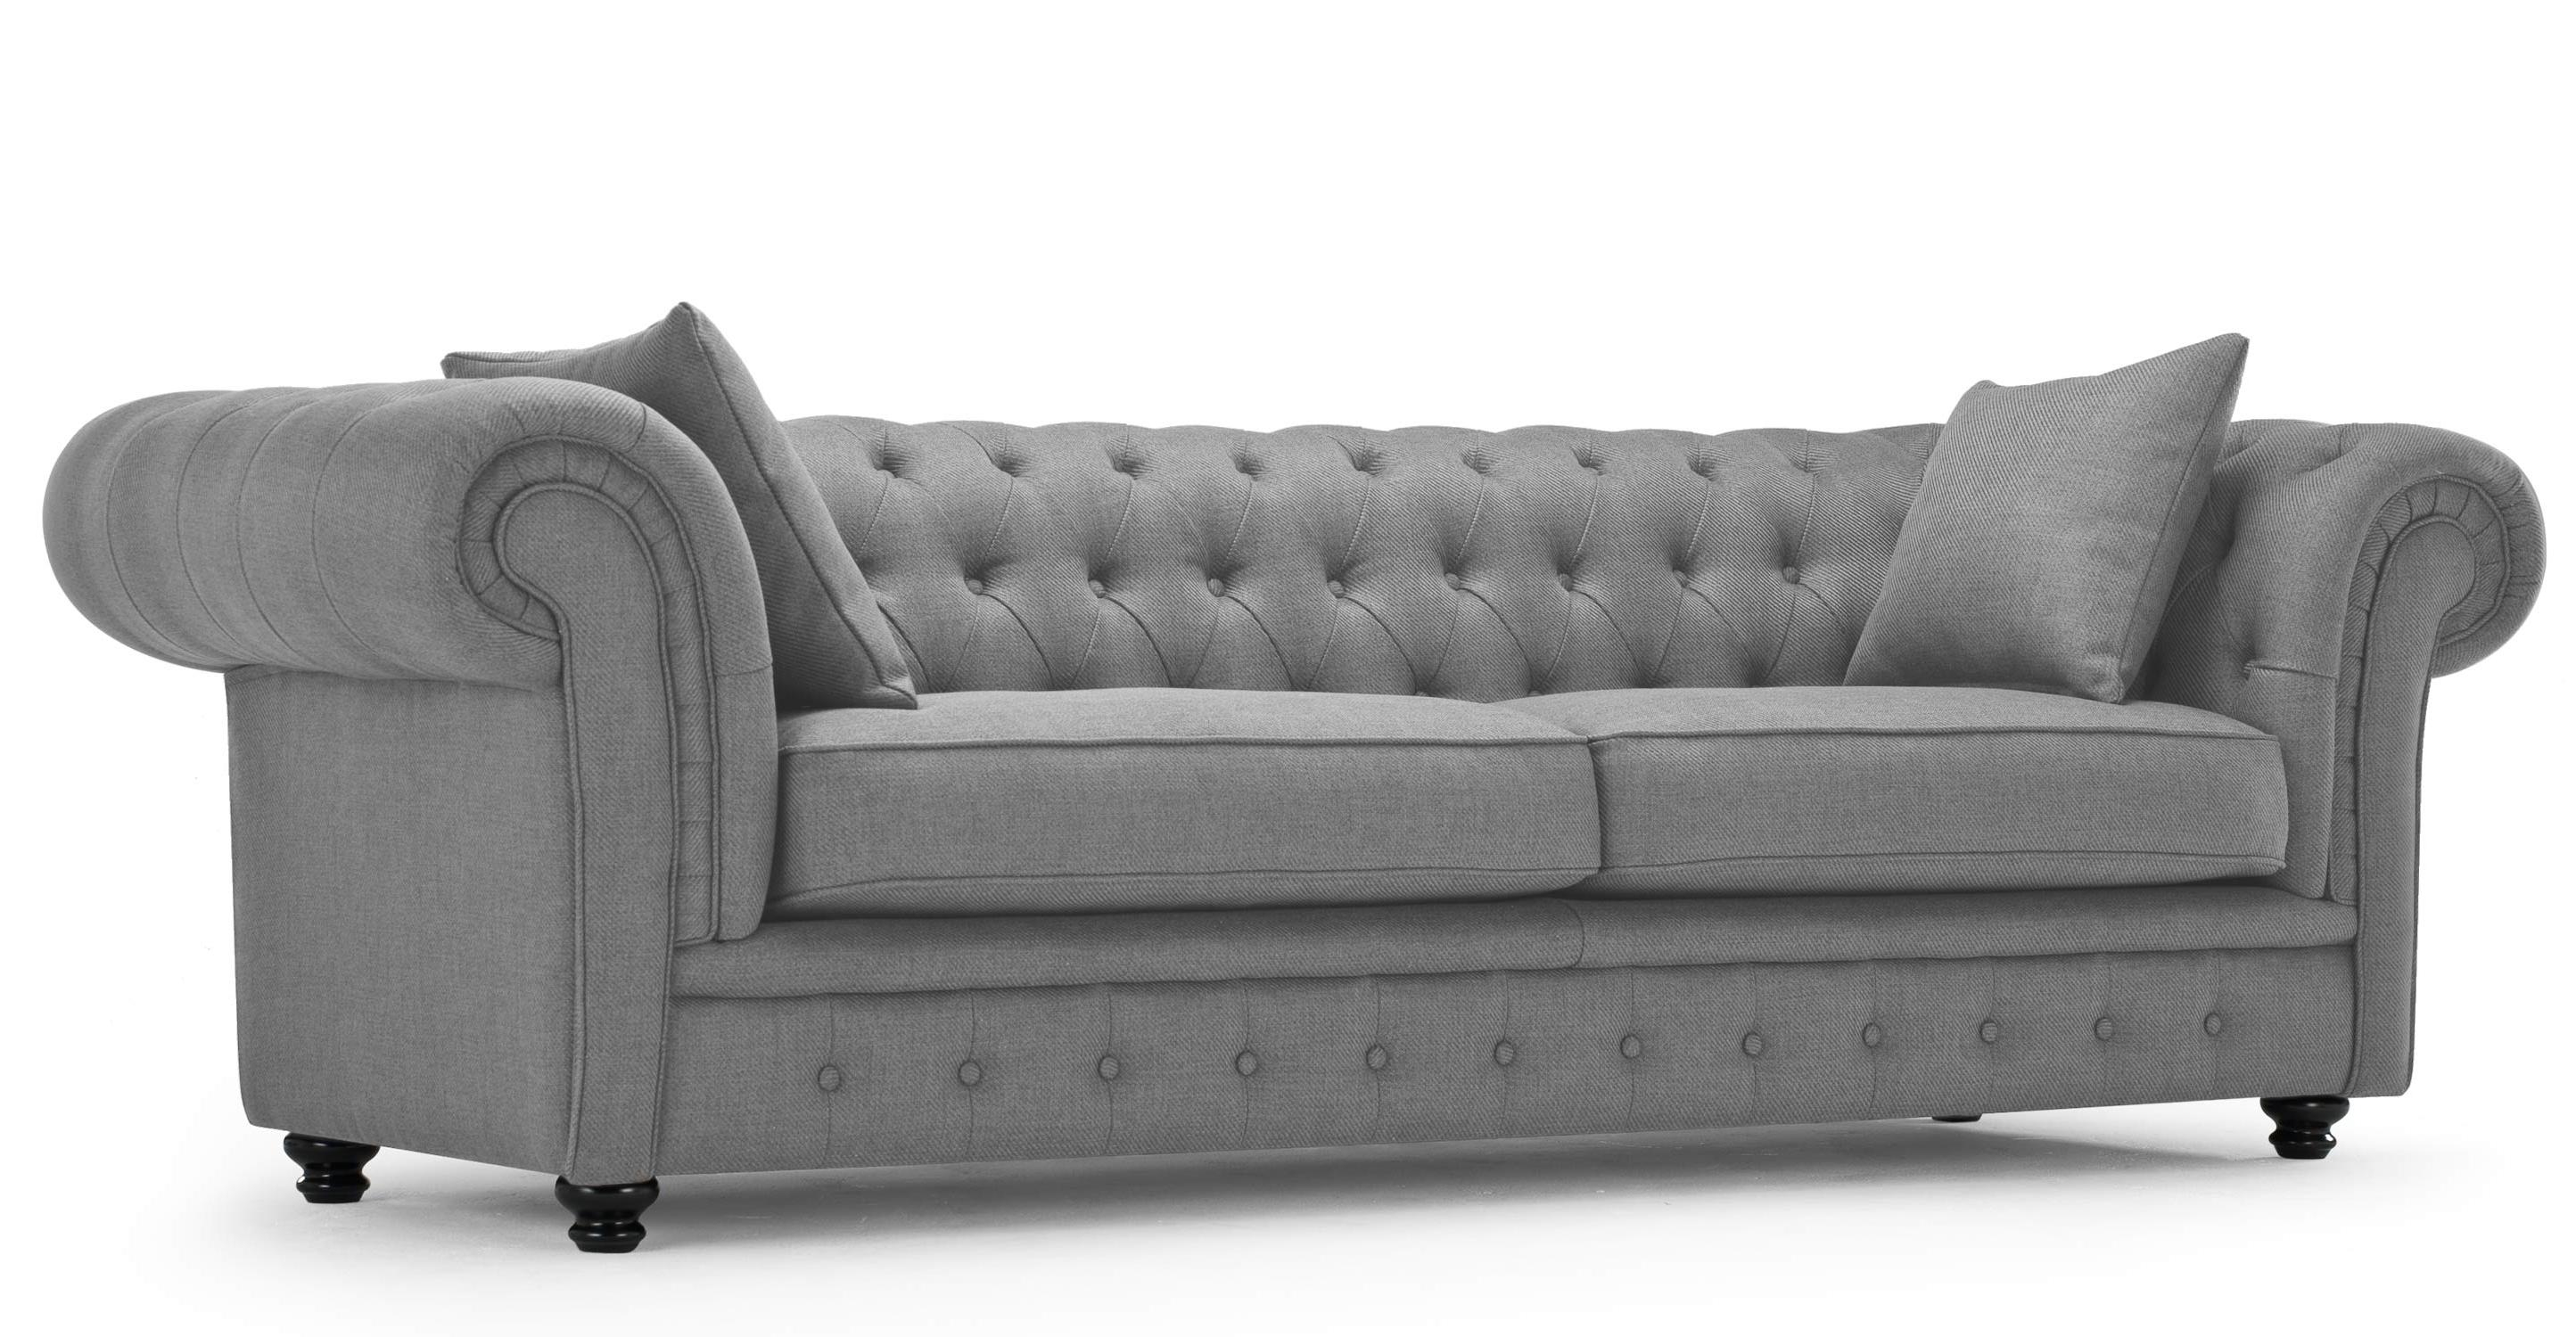 Storage Ethan Allen Chesterfield Sofa Ethan Allen Sofa Bed Ethan With Regard To Ethan Allen Chesterfield Sofas (Image 14 of 20)